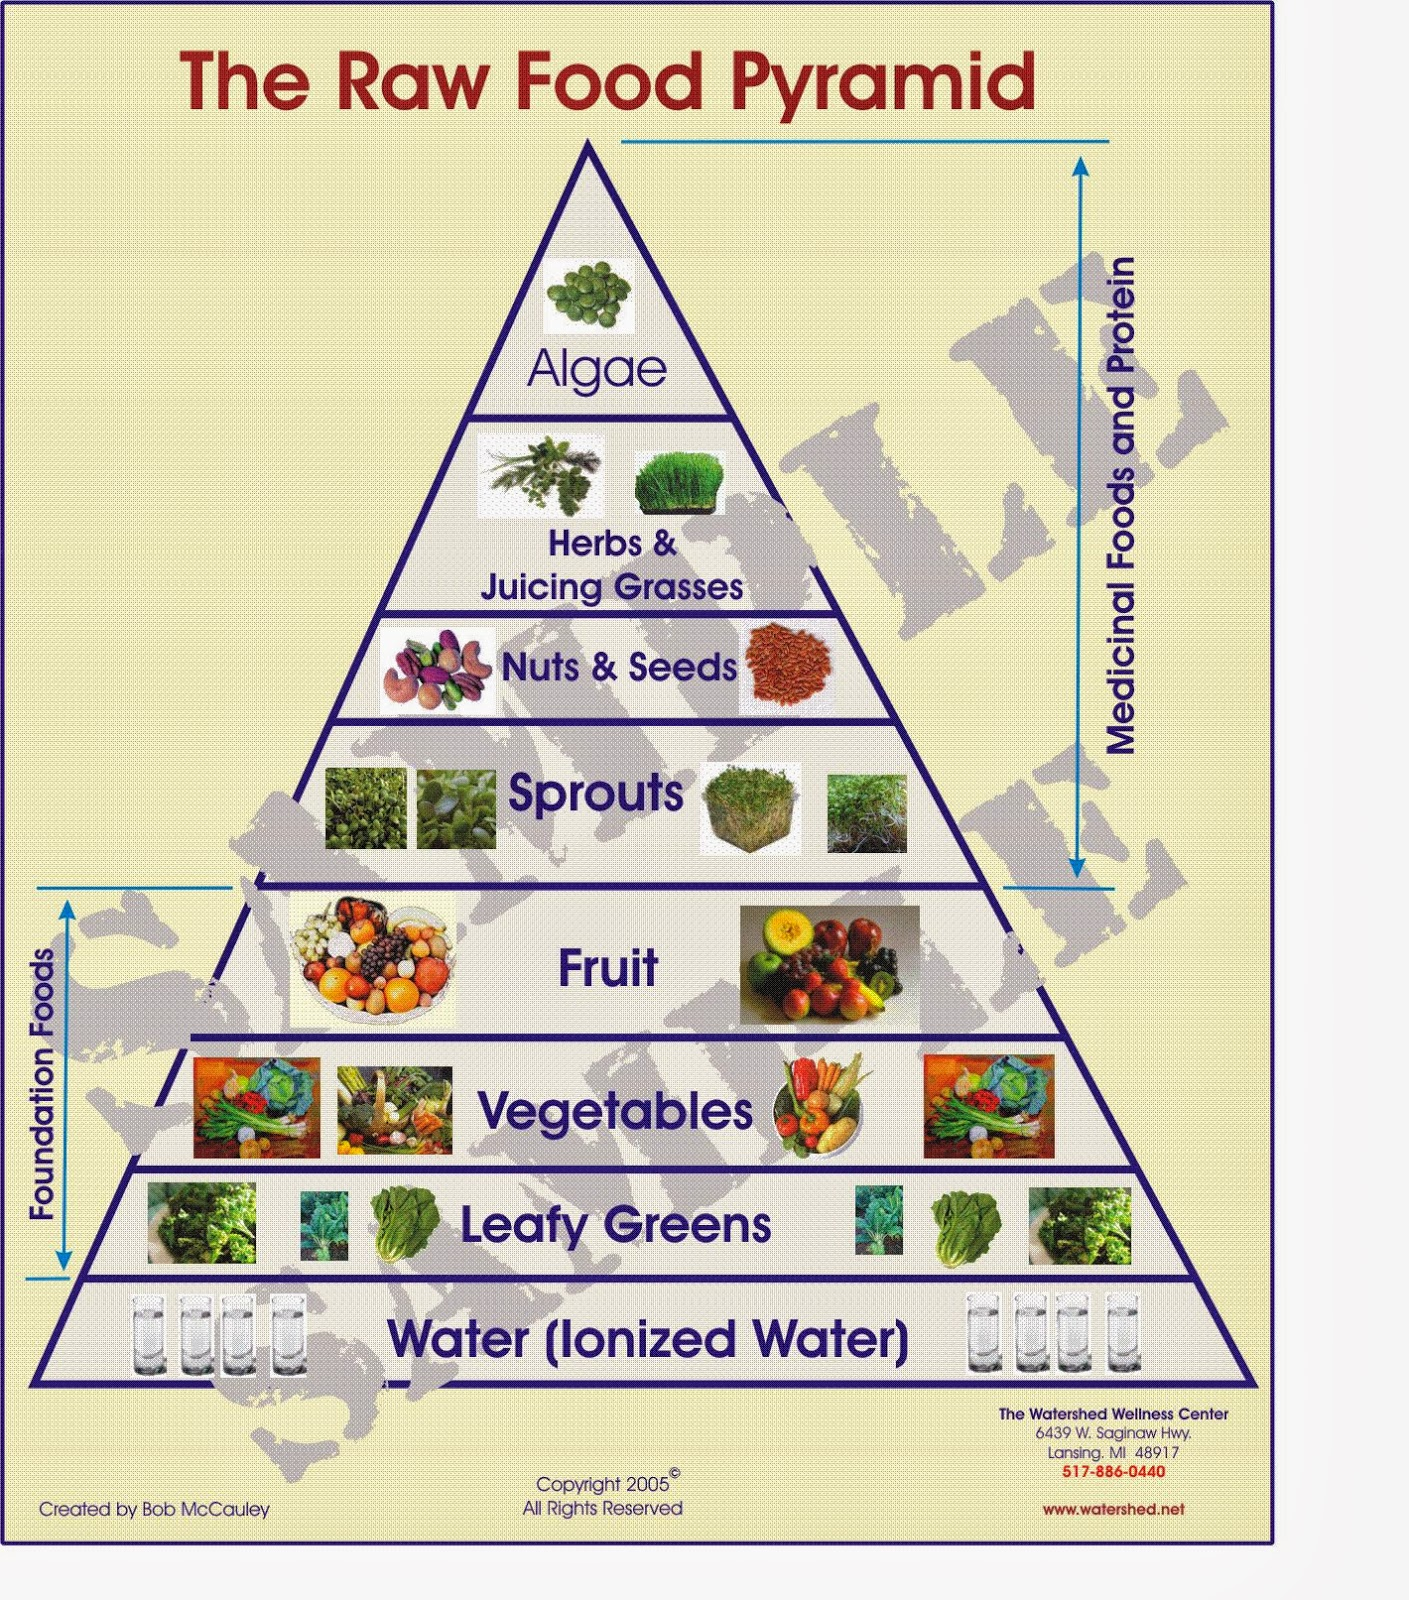 Pin by Raw Vegan on Raw Food Pyramid | Pinterest | Search, By and On